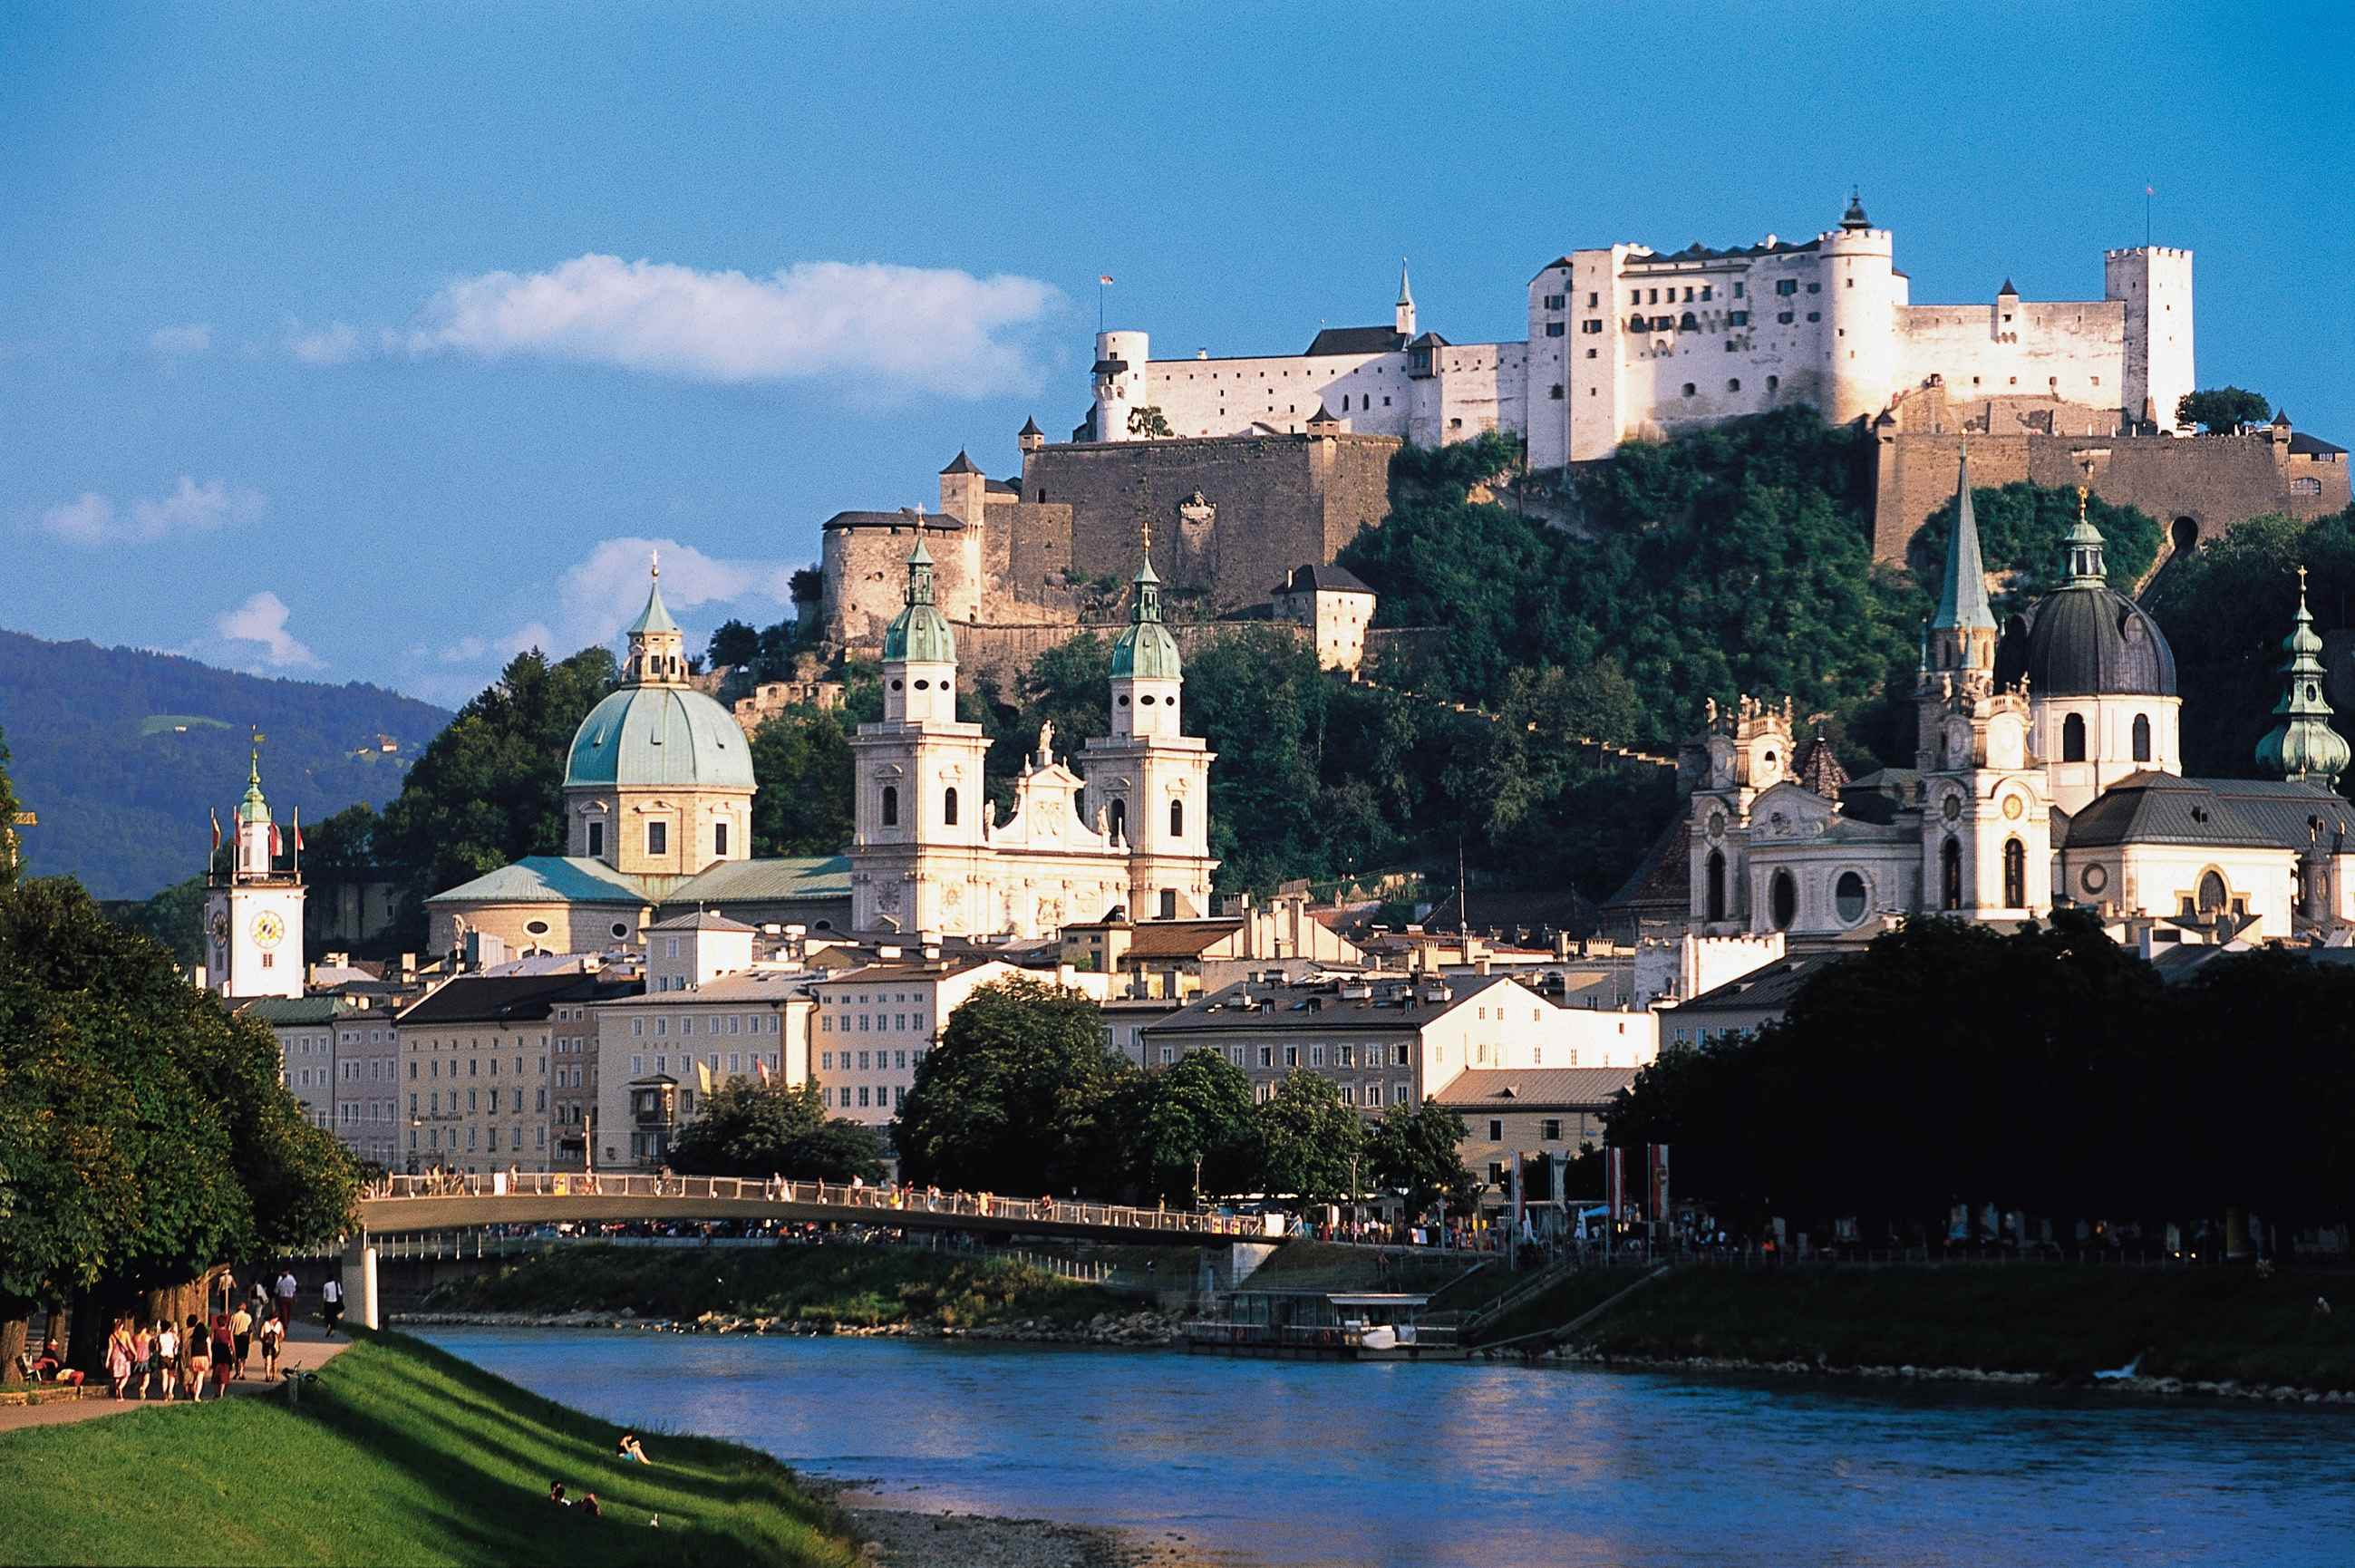 Salzburg, Austria &#8211; A city of culture and music